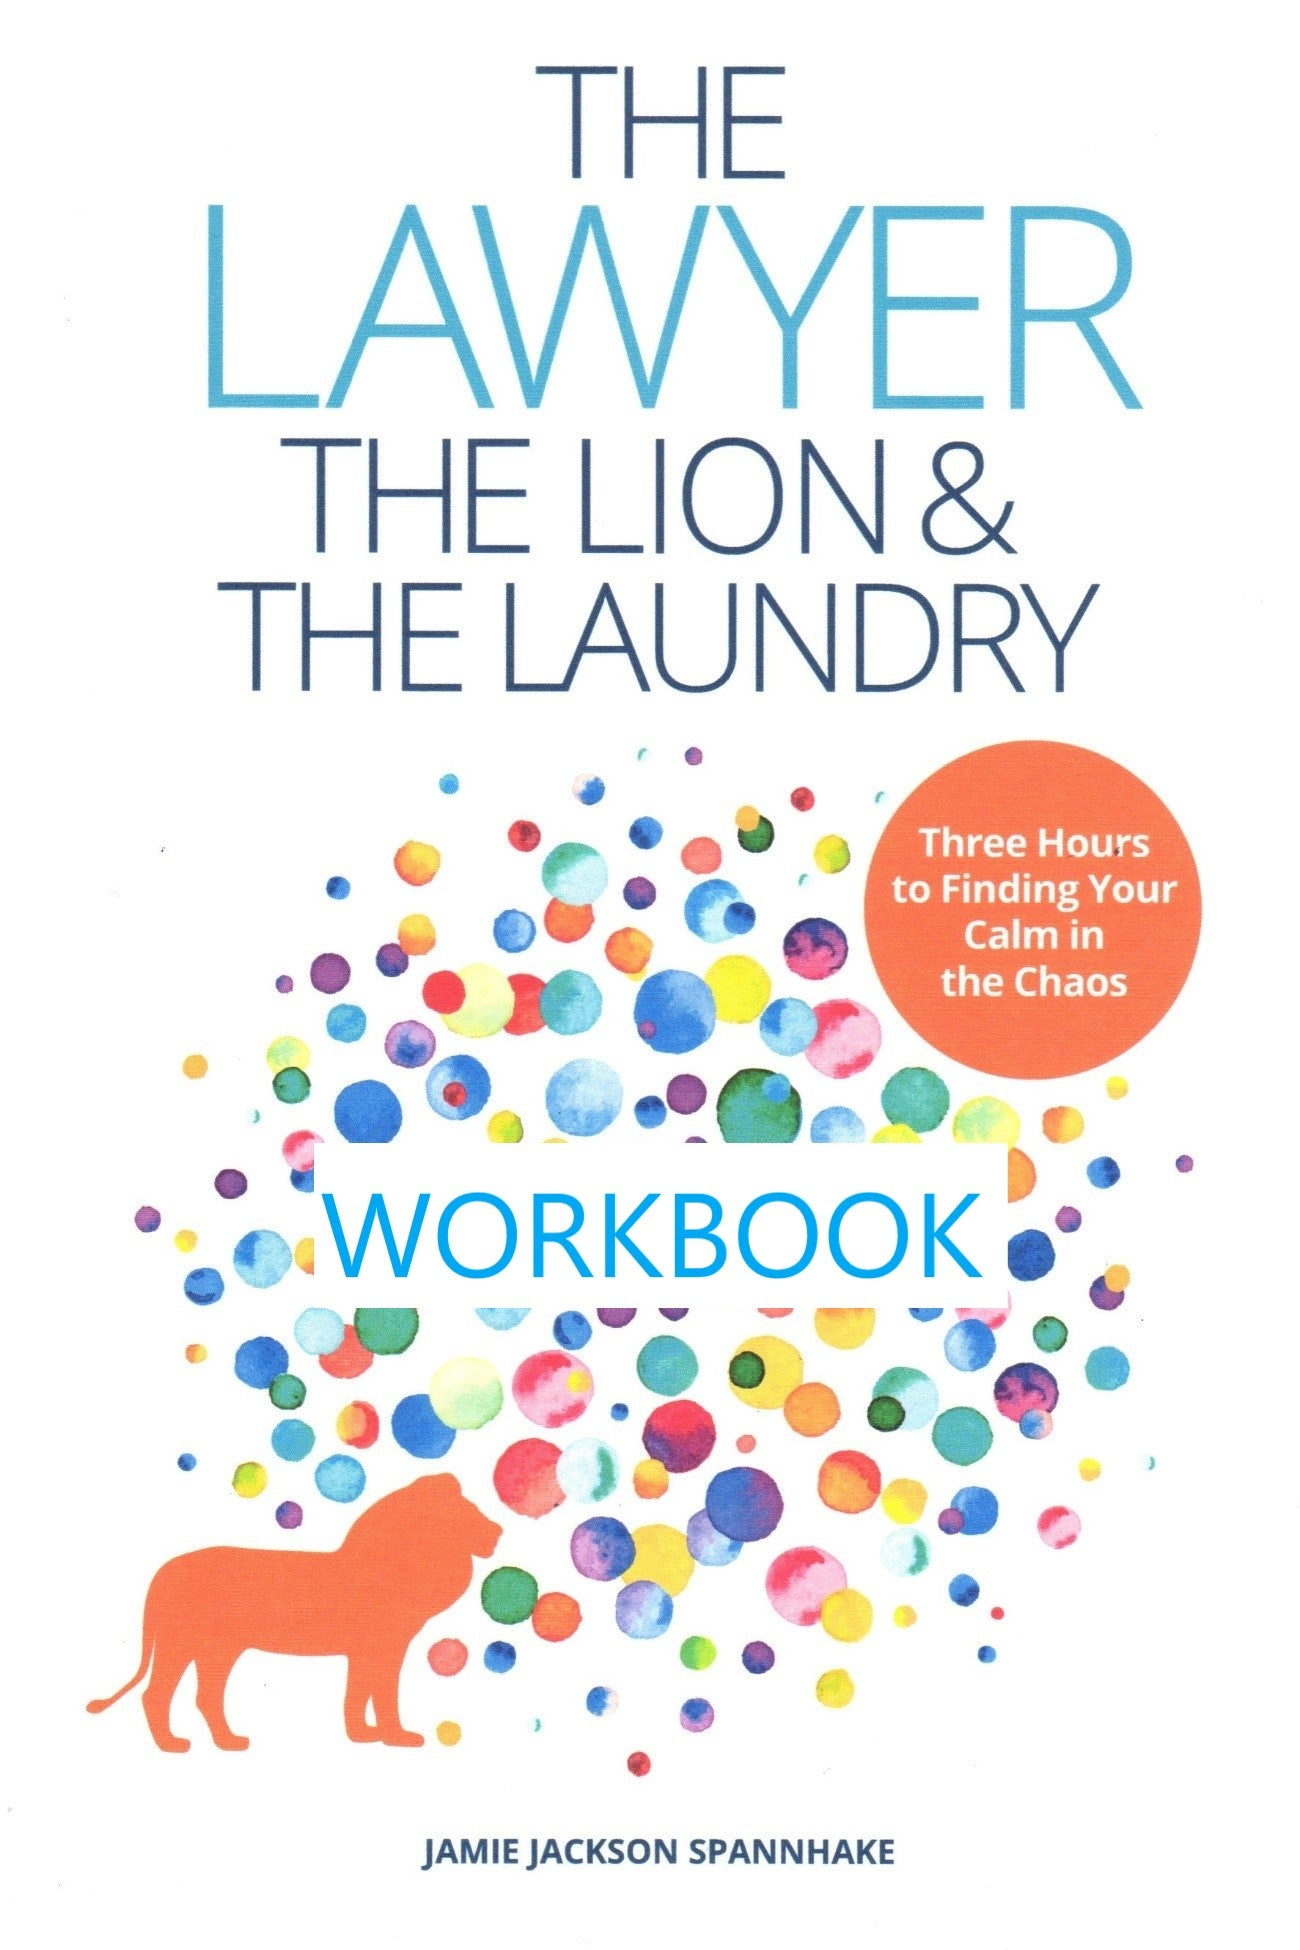 The Lawyer, the Lion, & the Laundry Workbook